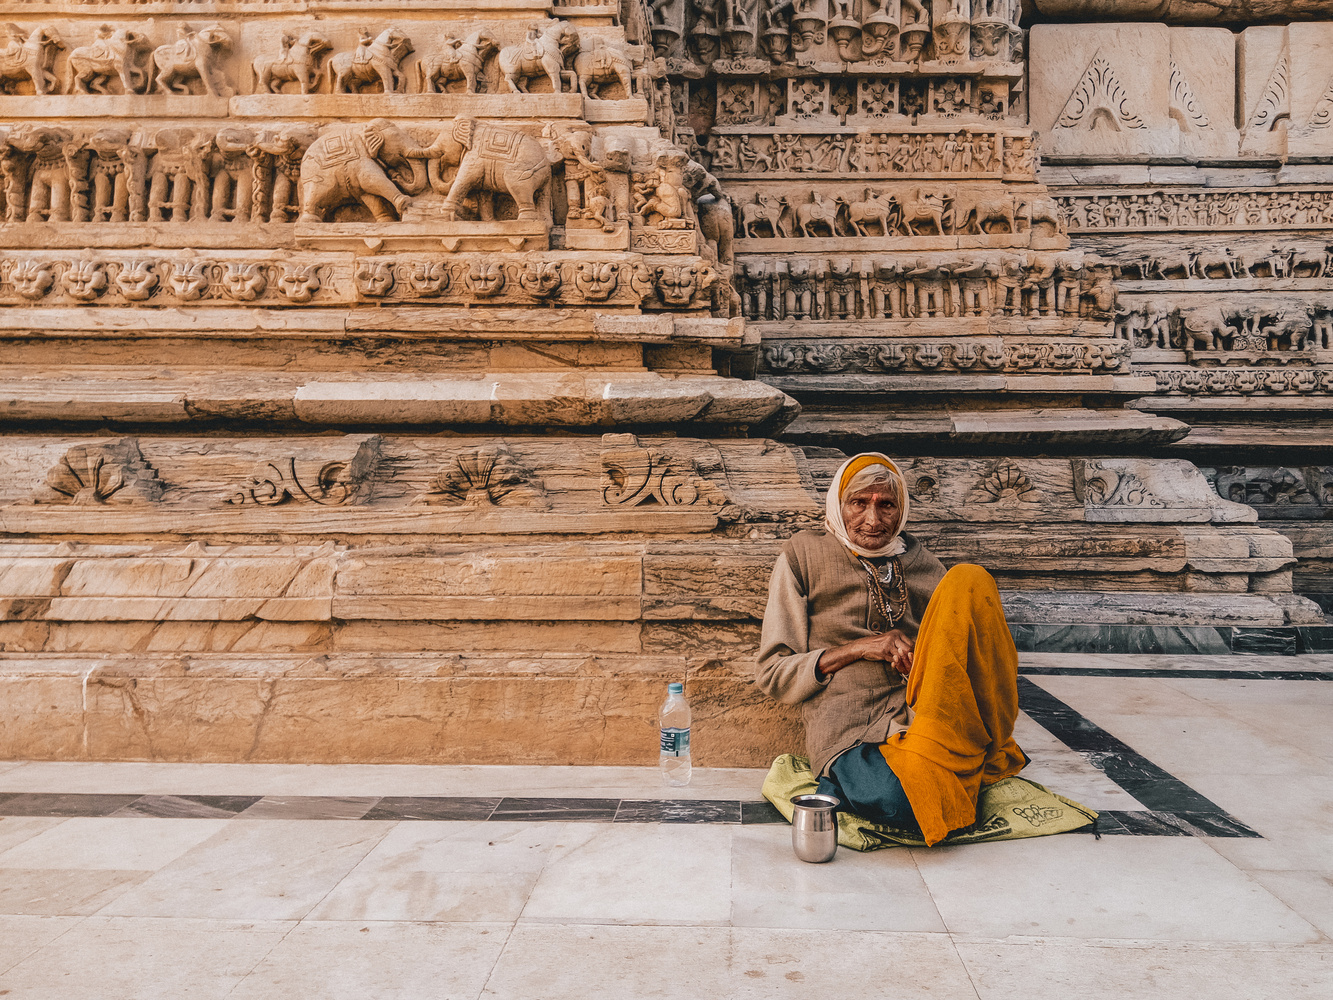 Homeless in Temple by Bhupendra Ranawat